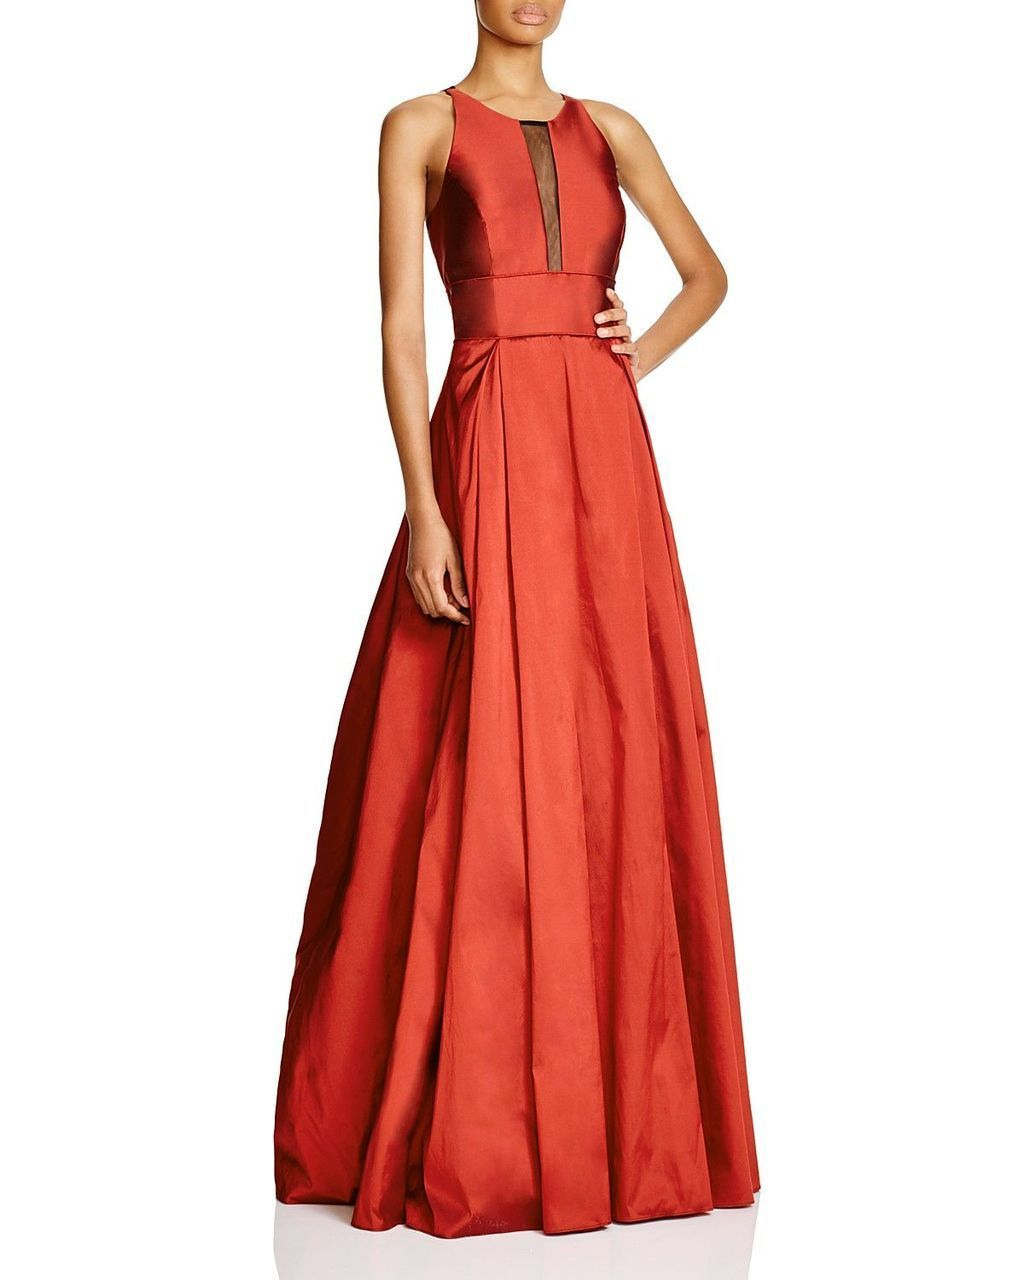 Aidan Mattox - 54467610 Sleeveless Illusion Taffeta Evening Gown in Red